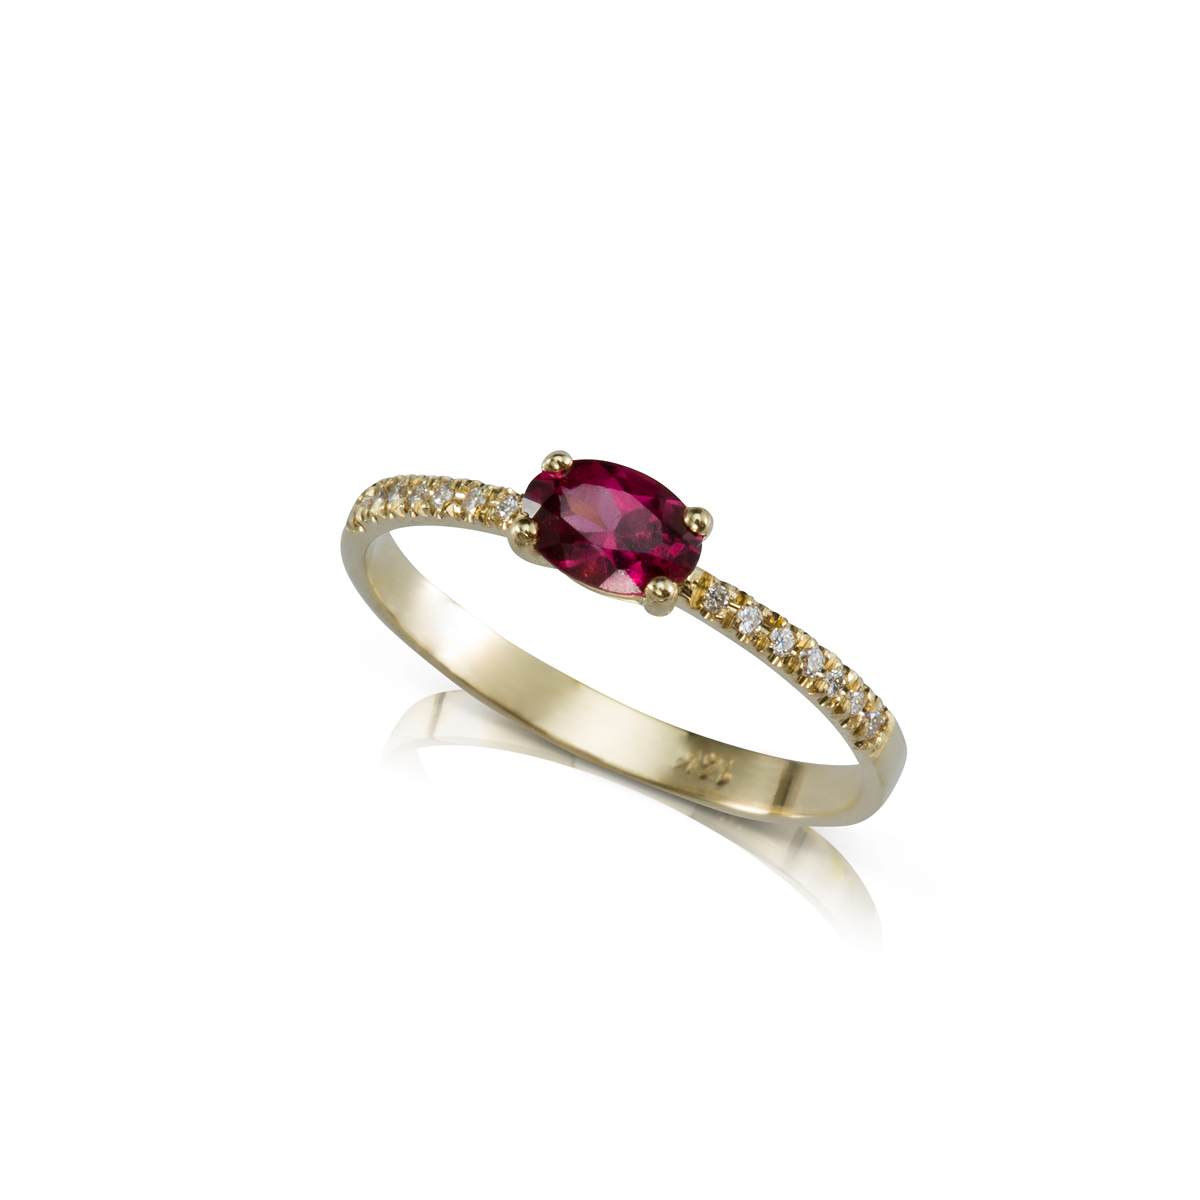 Solitaire ring set with an oval cut rhodolite